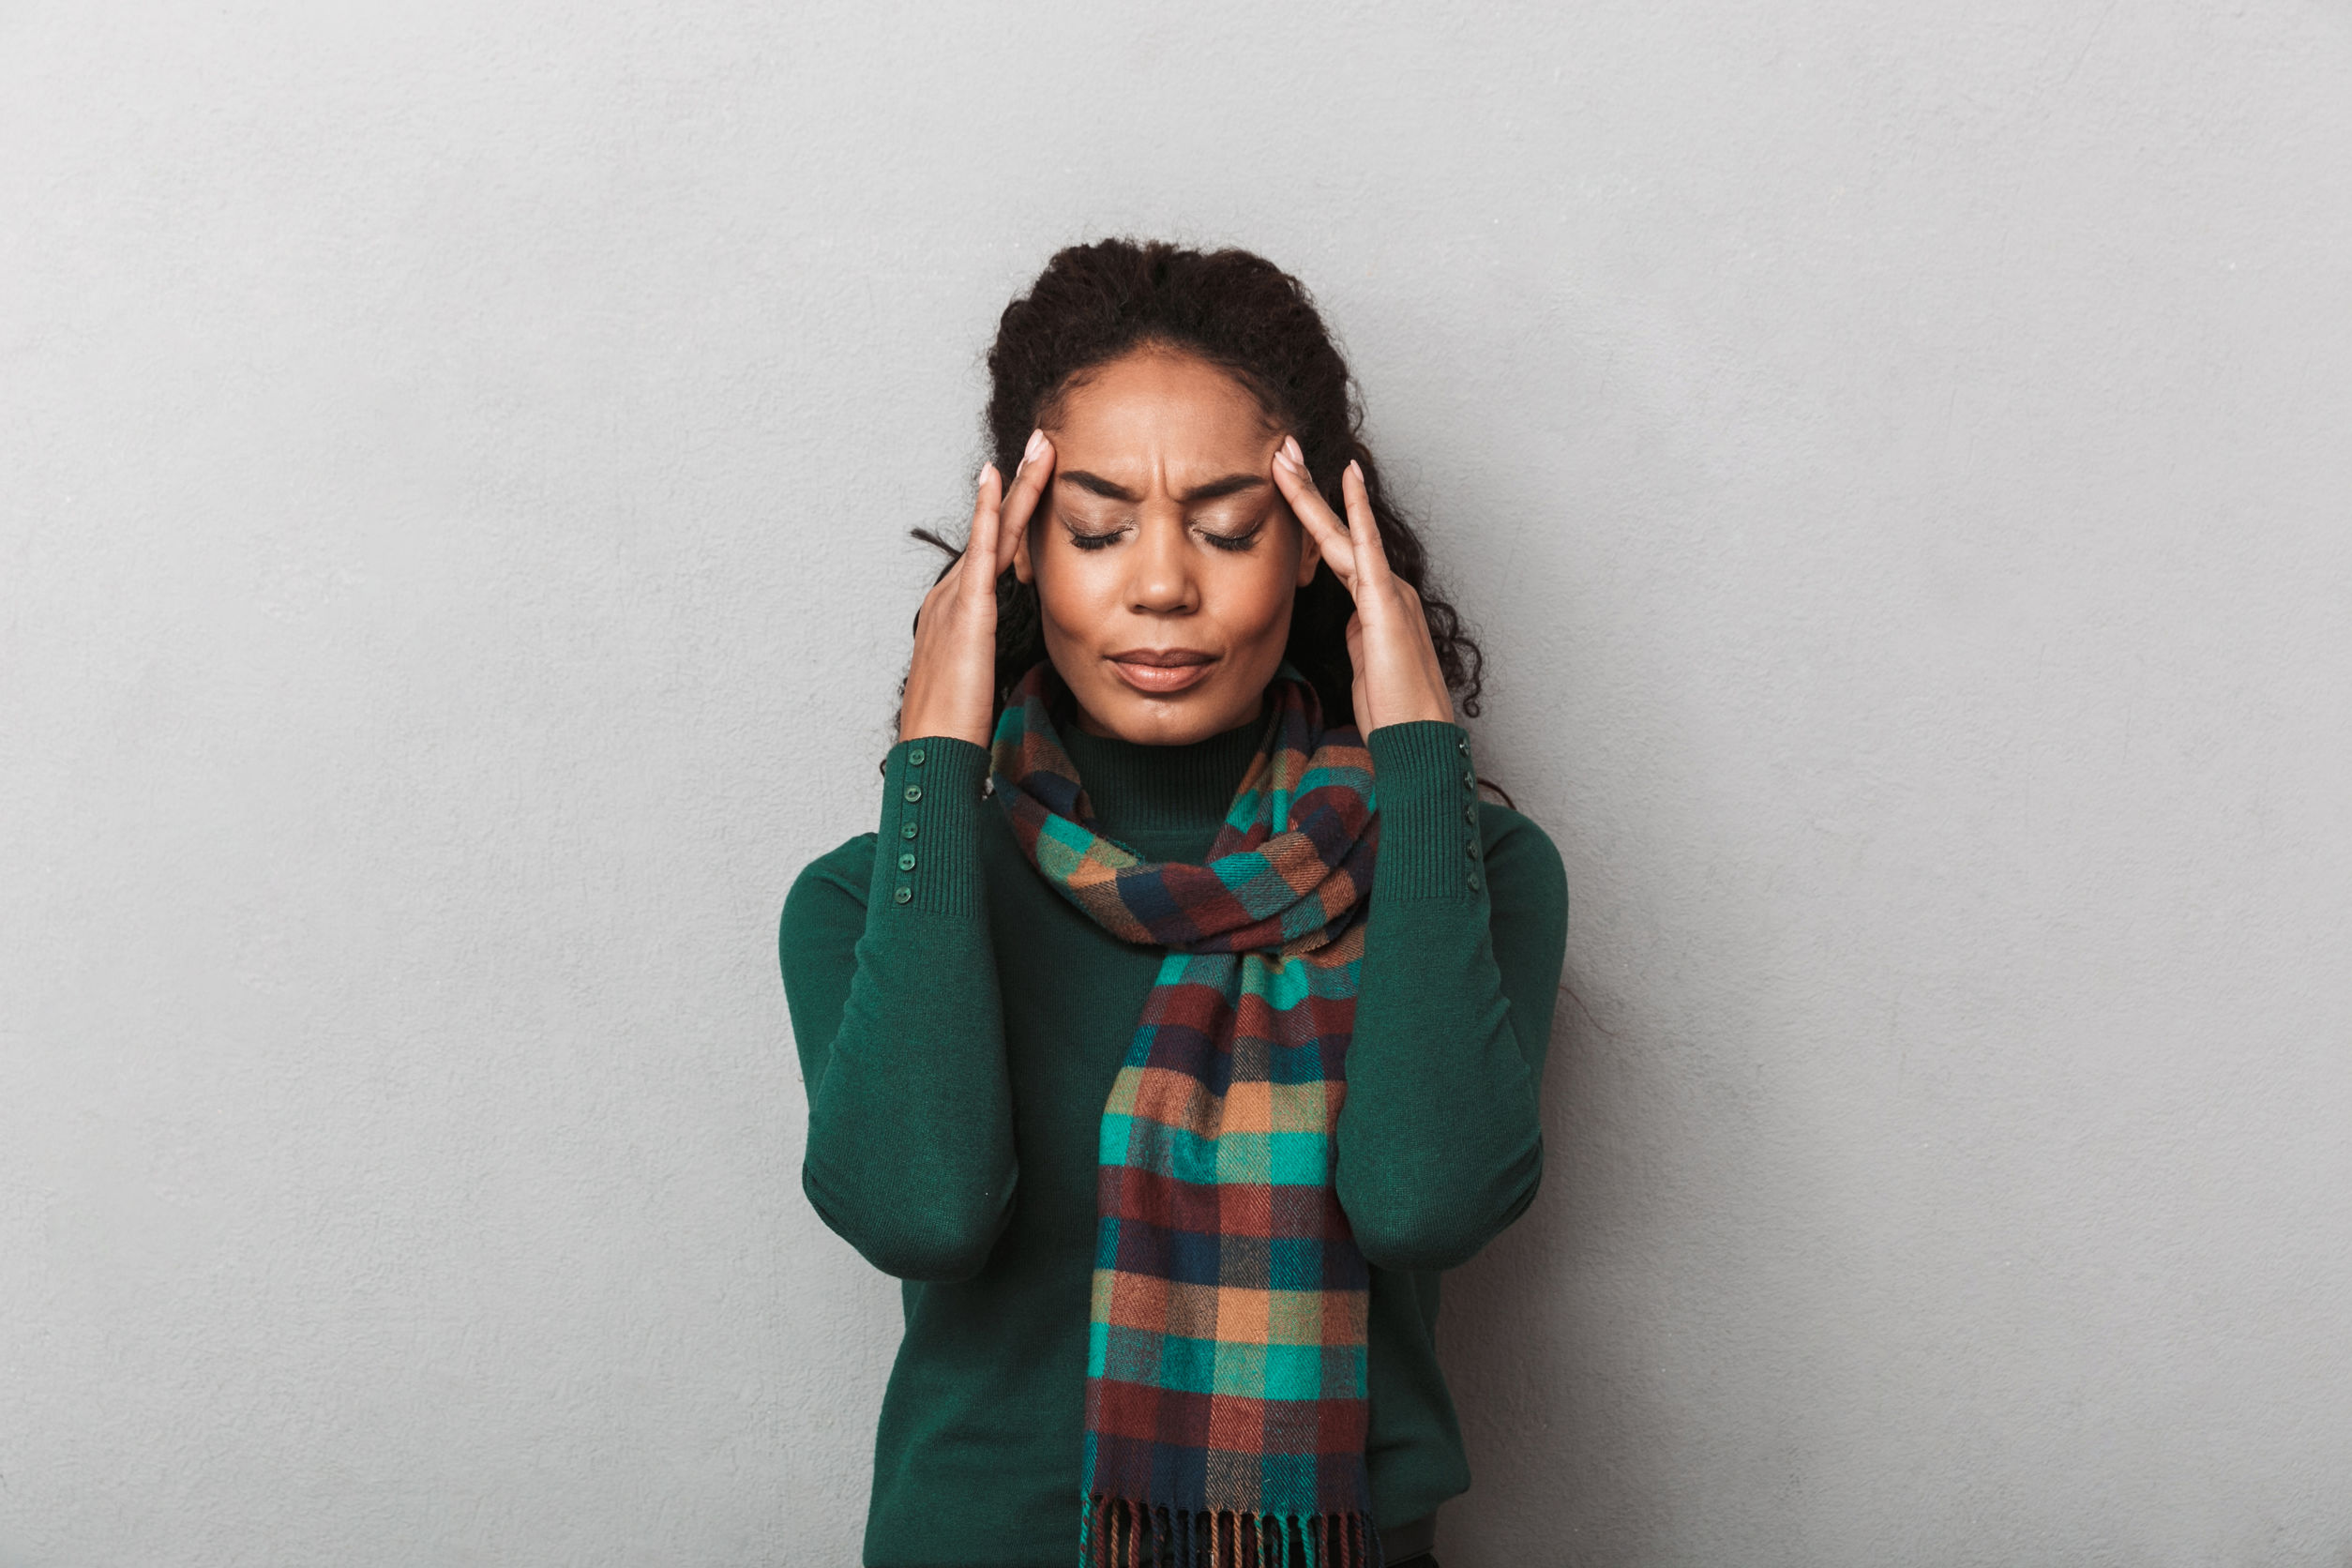 Woman wearing sweater standing over gray wall background, rubbing her temples